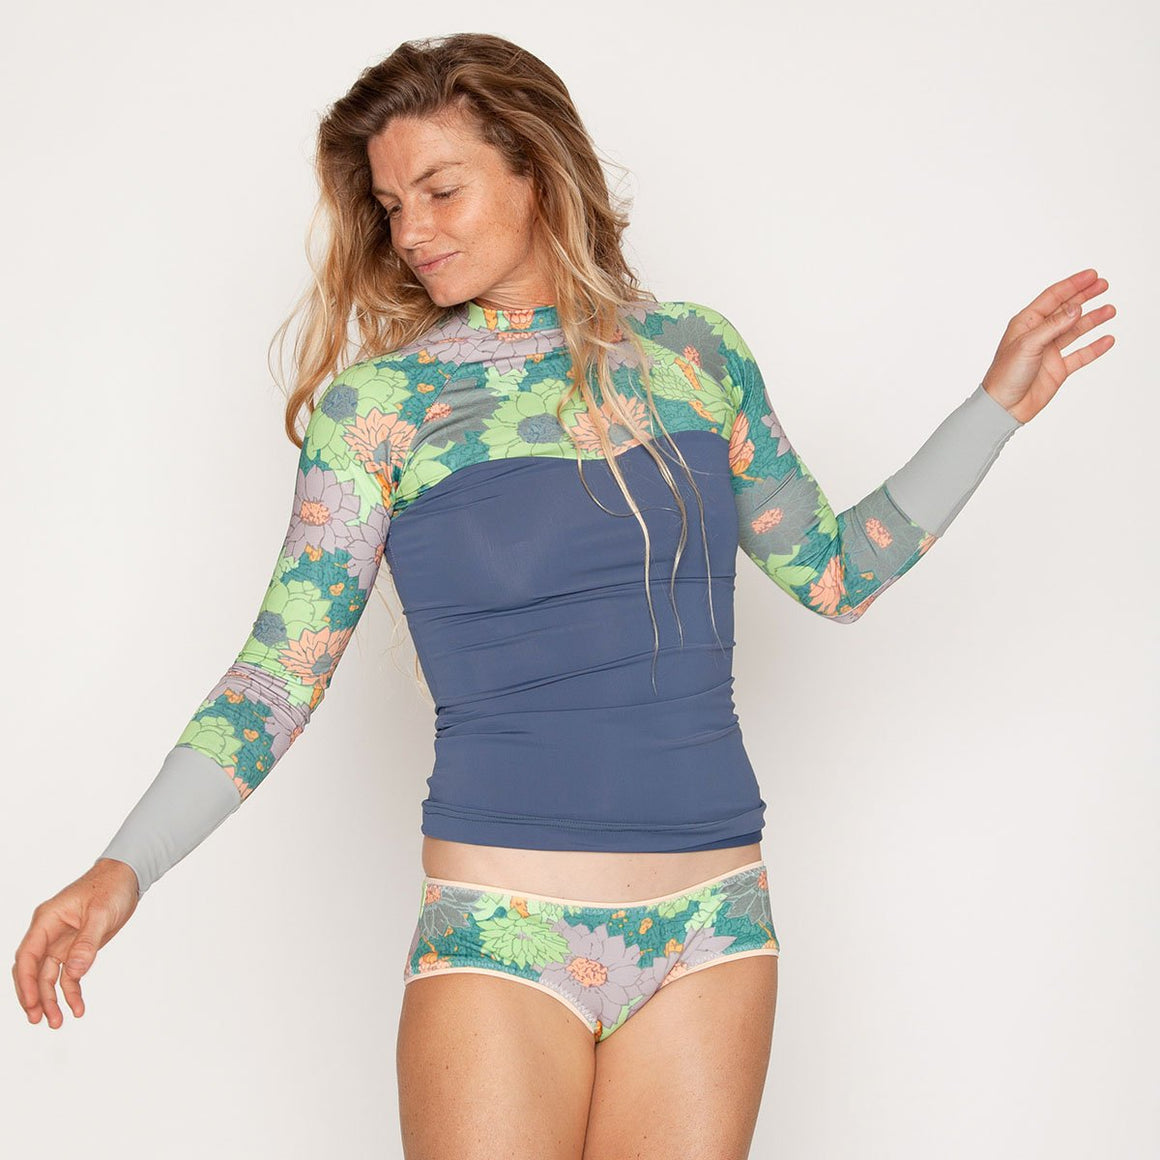 Seea - Hermosa Swim Shirt - Mirage